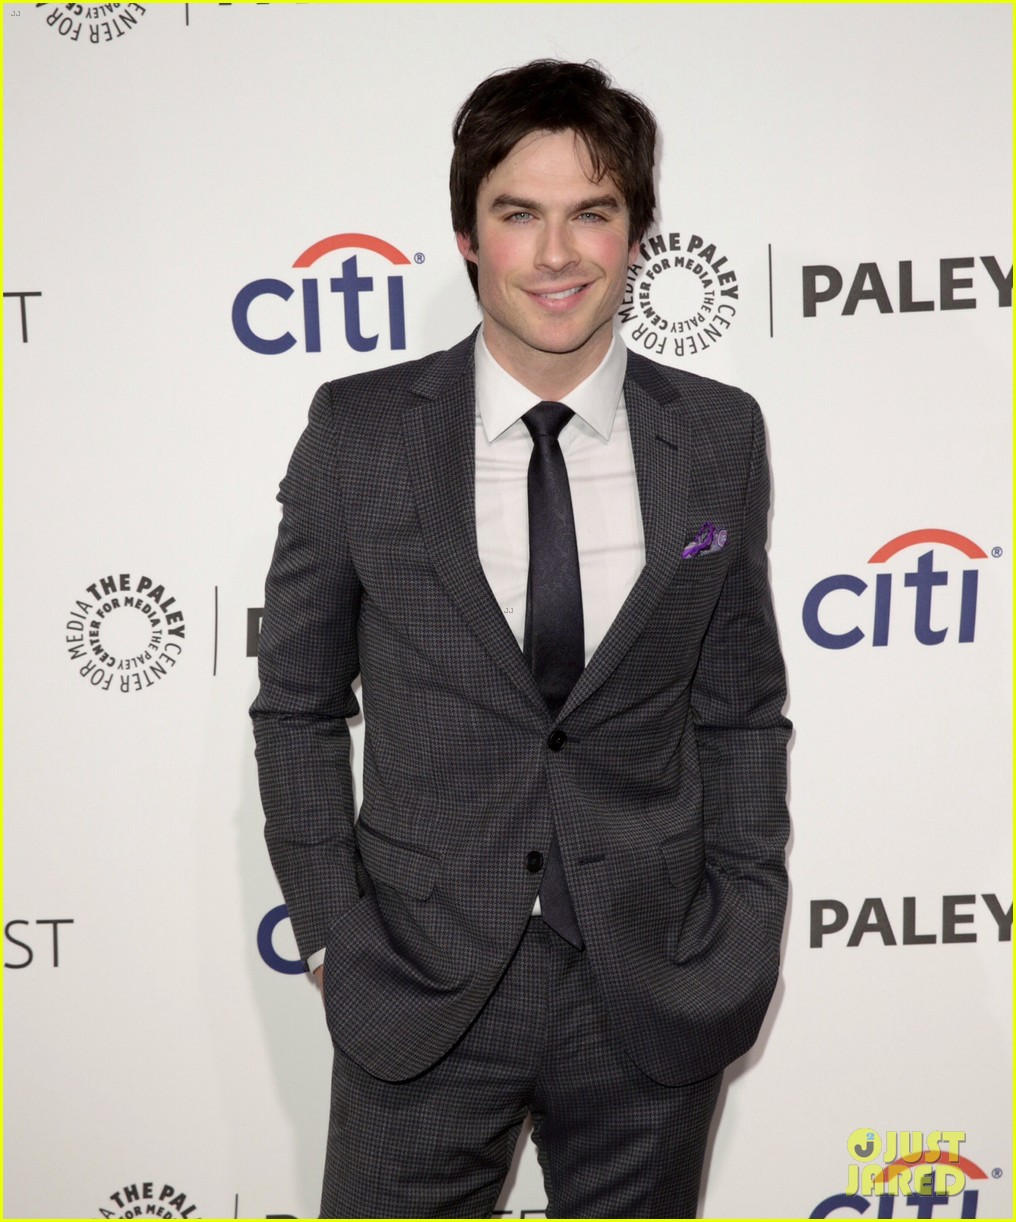 vampire diaries paleyfest panel 15